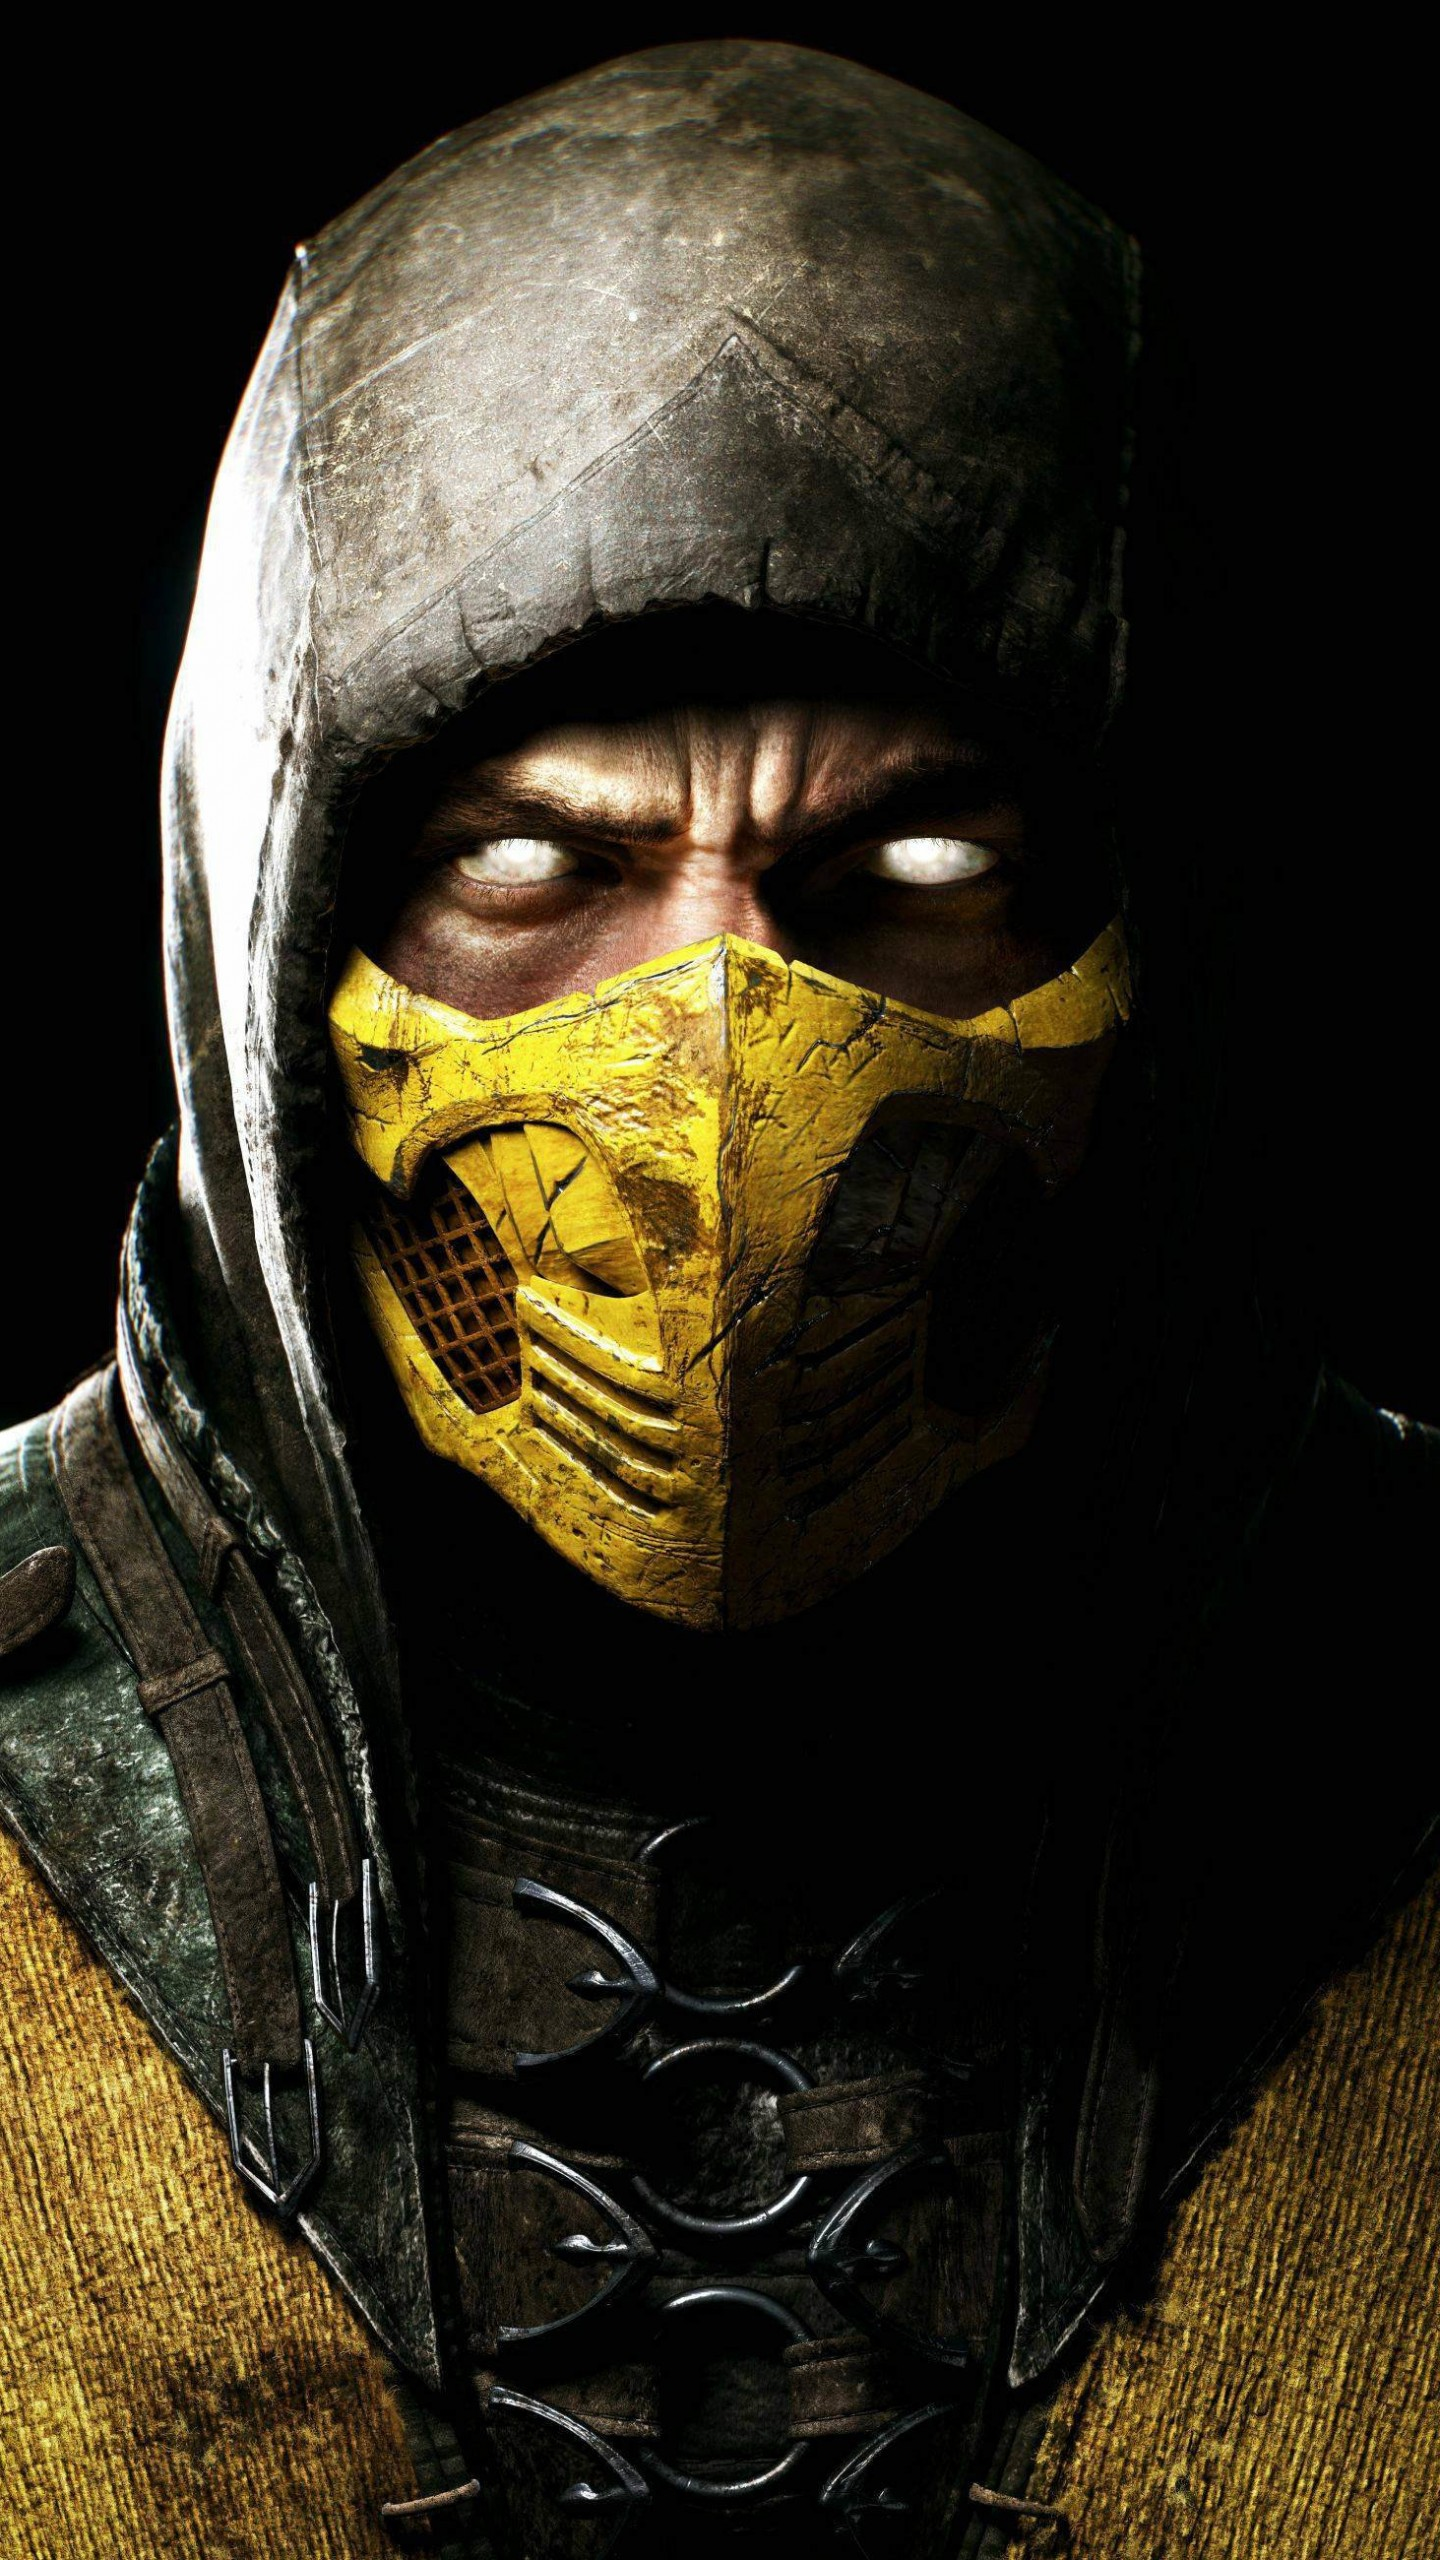 Scorpion Mortal Kombat X Wallpaper for SAMSUNG Galaxy S6